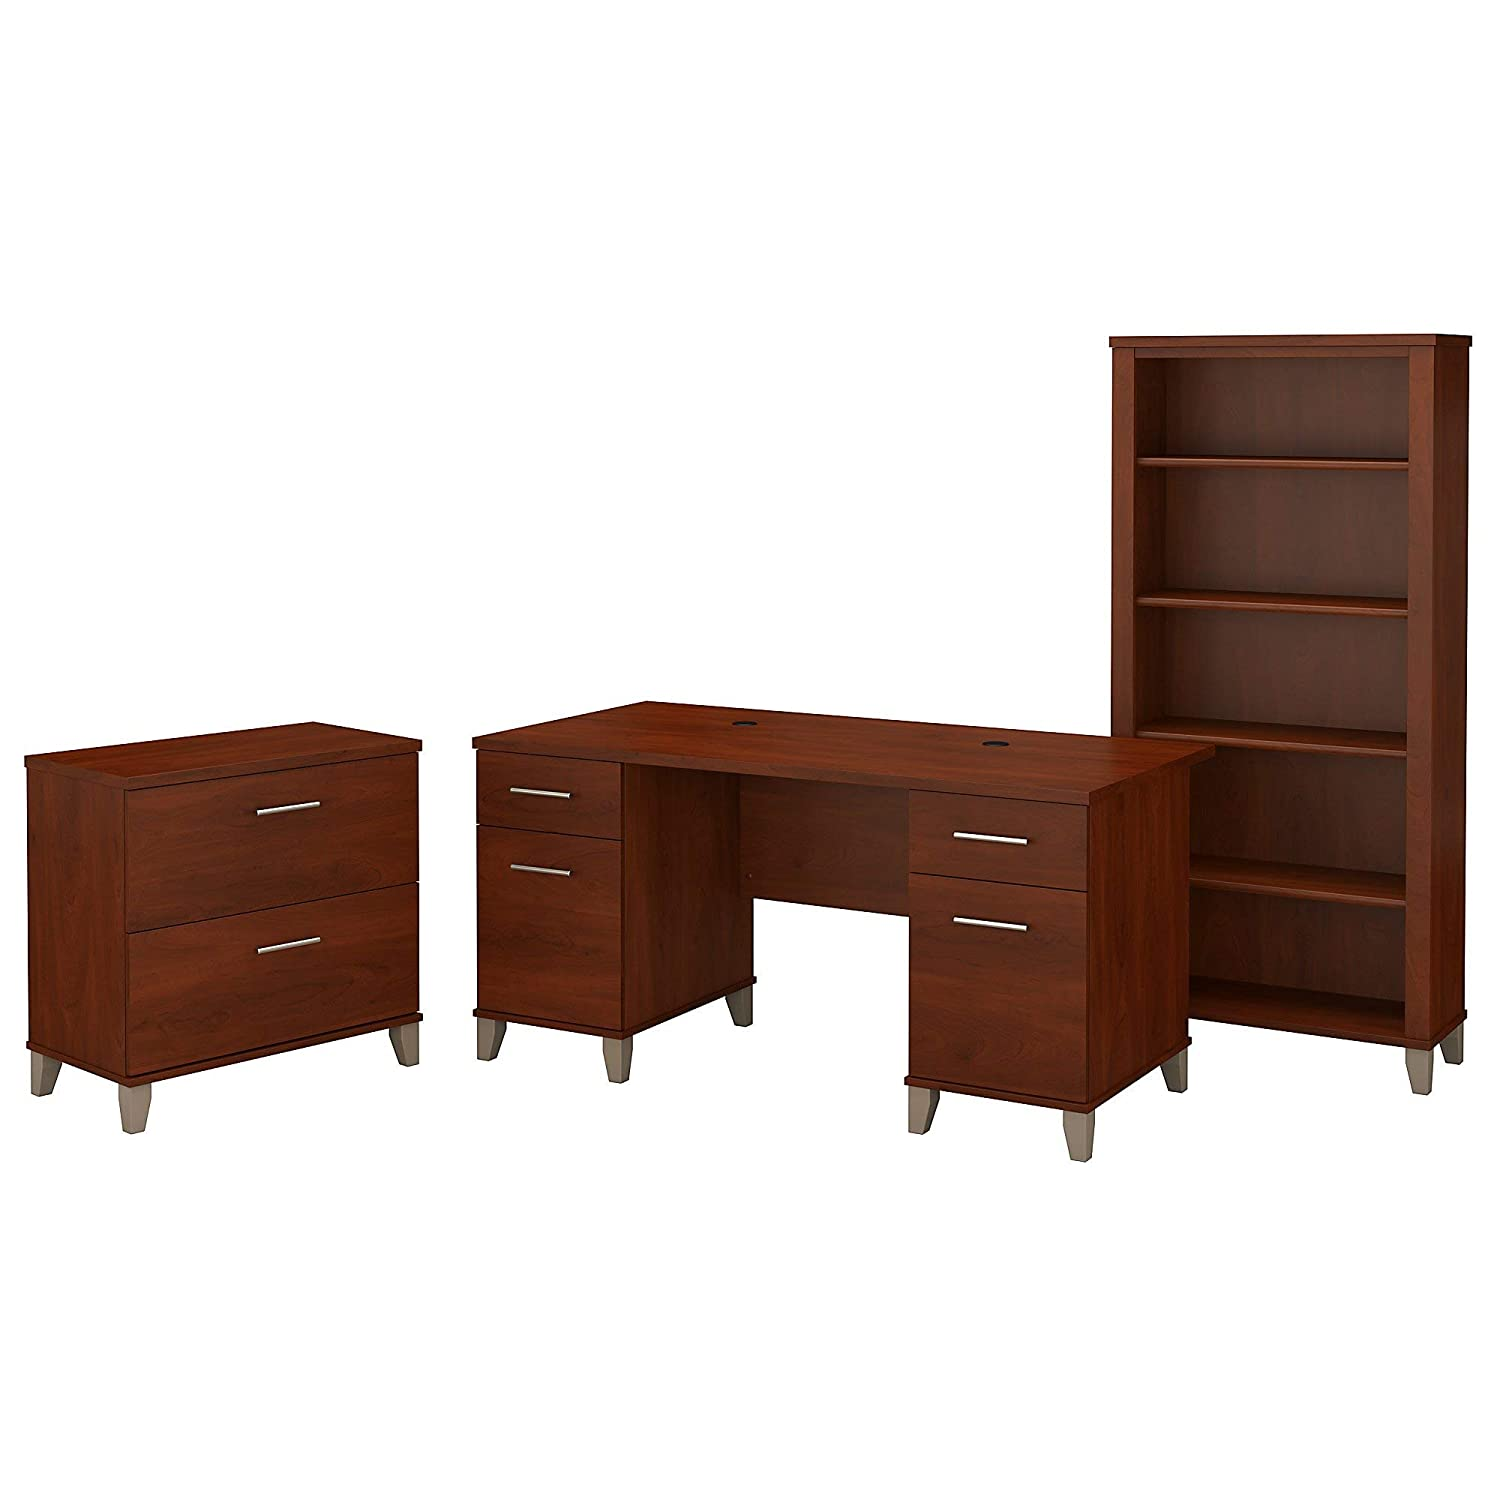 Pleasing Bush Furniture Somerset 60W Office Desk With Lateral File Cabinet And 5 Shelf Bookcase In Hansen Cherry Download Free Architecture Designs Pushbritishbridgeorg